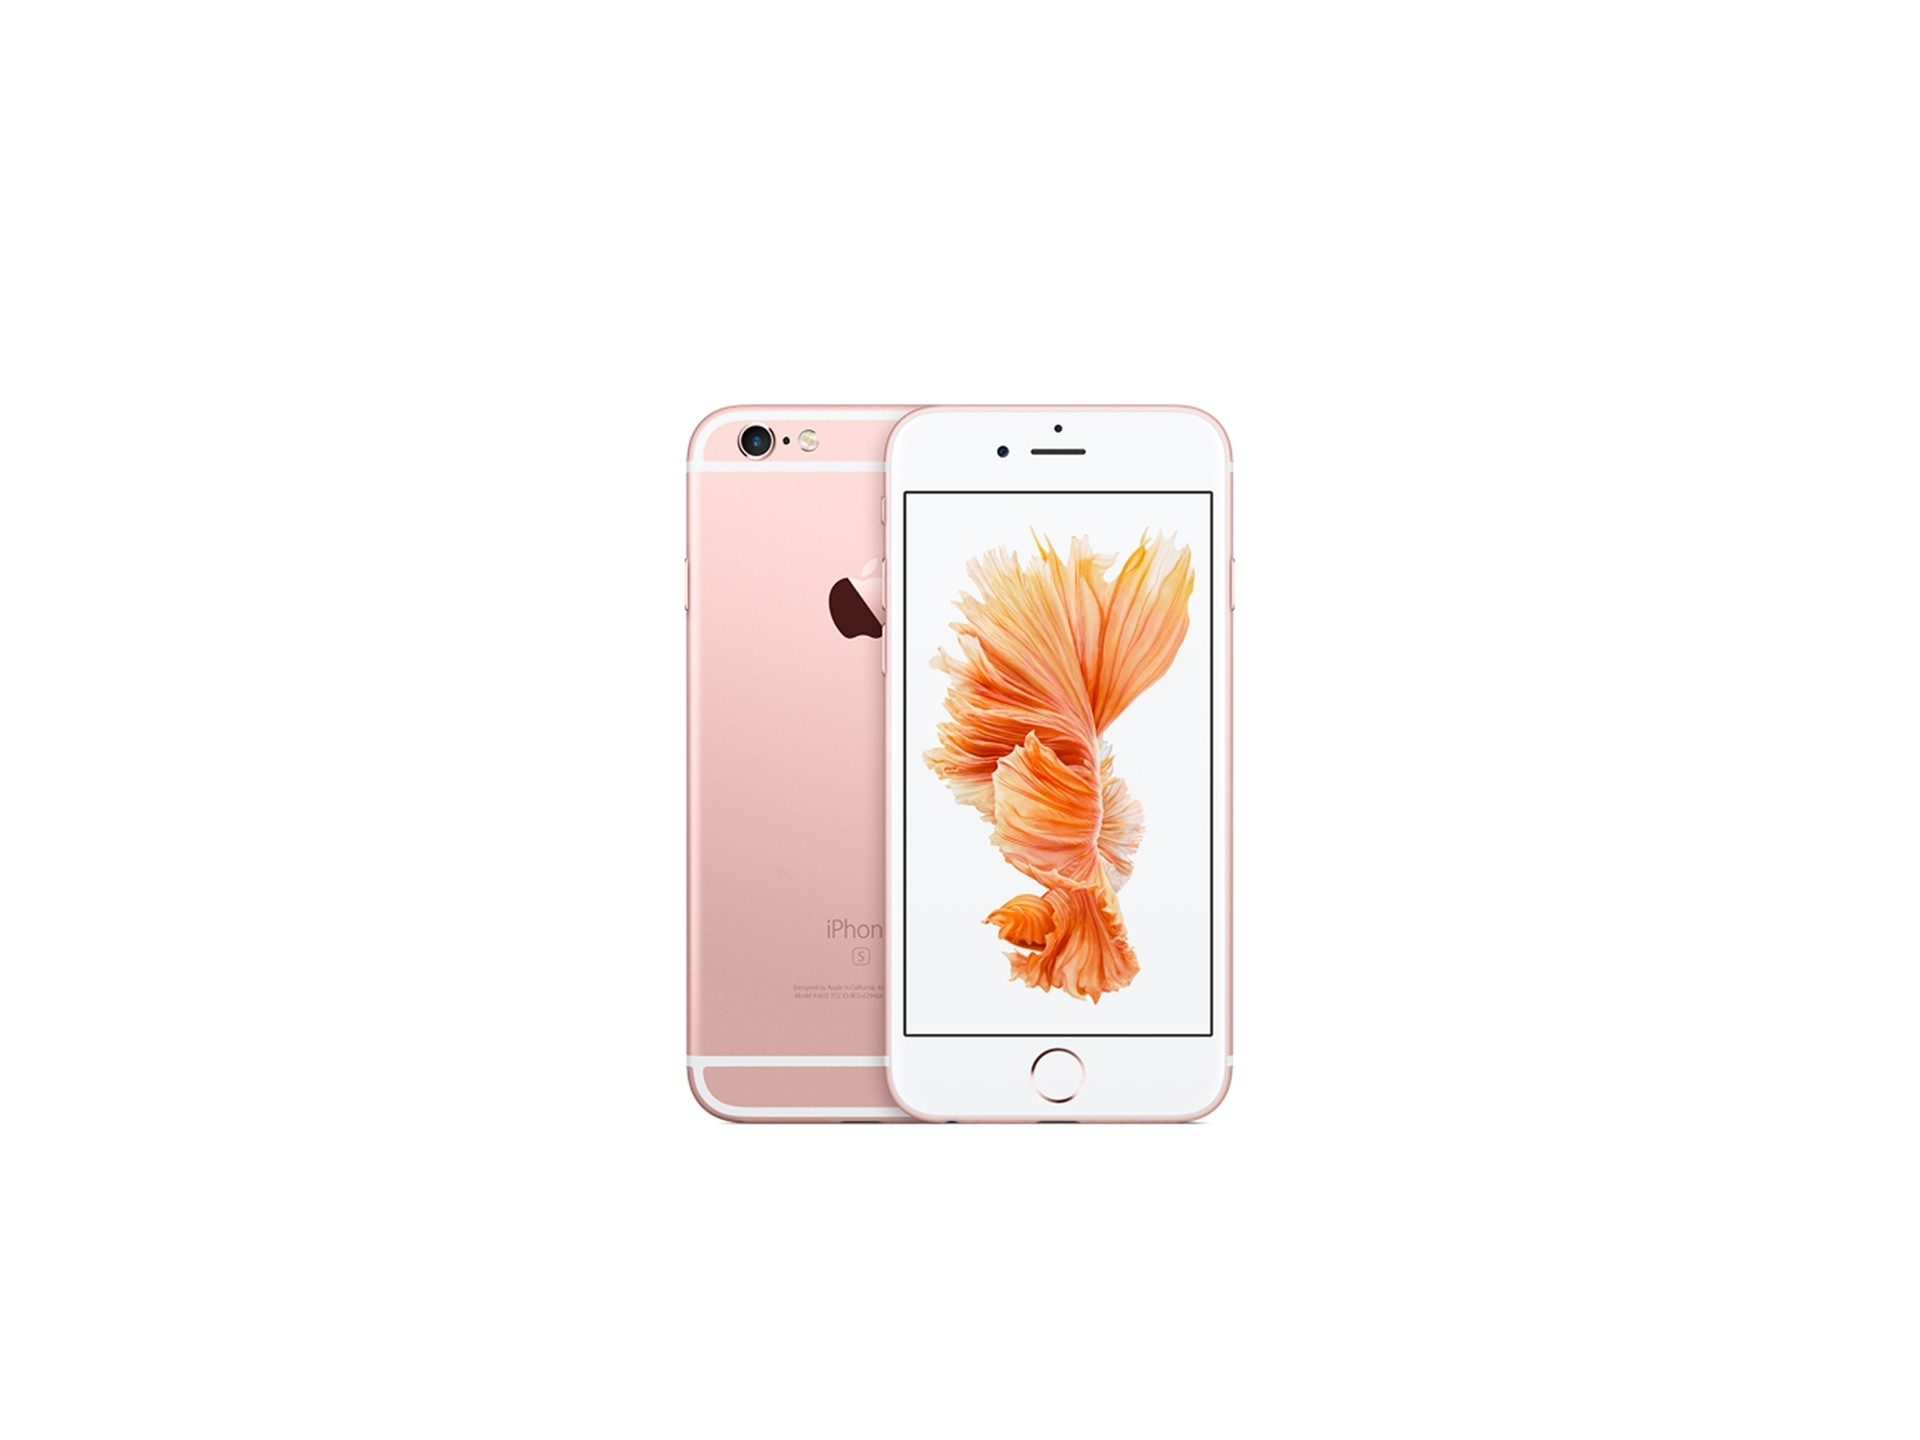 iPhone 6s Plus (AT&T) 64 GB Rose Gold MKTU2LL/A